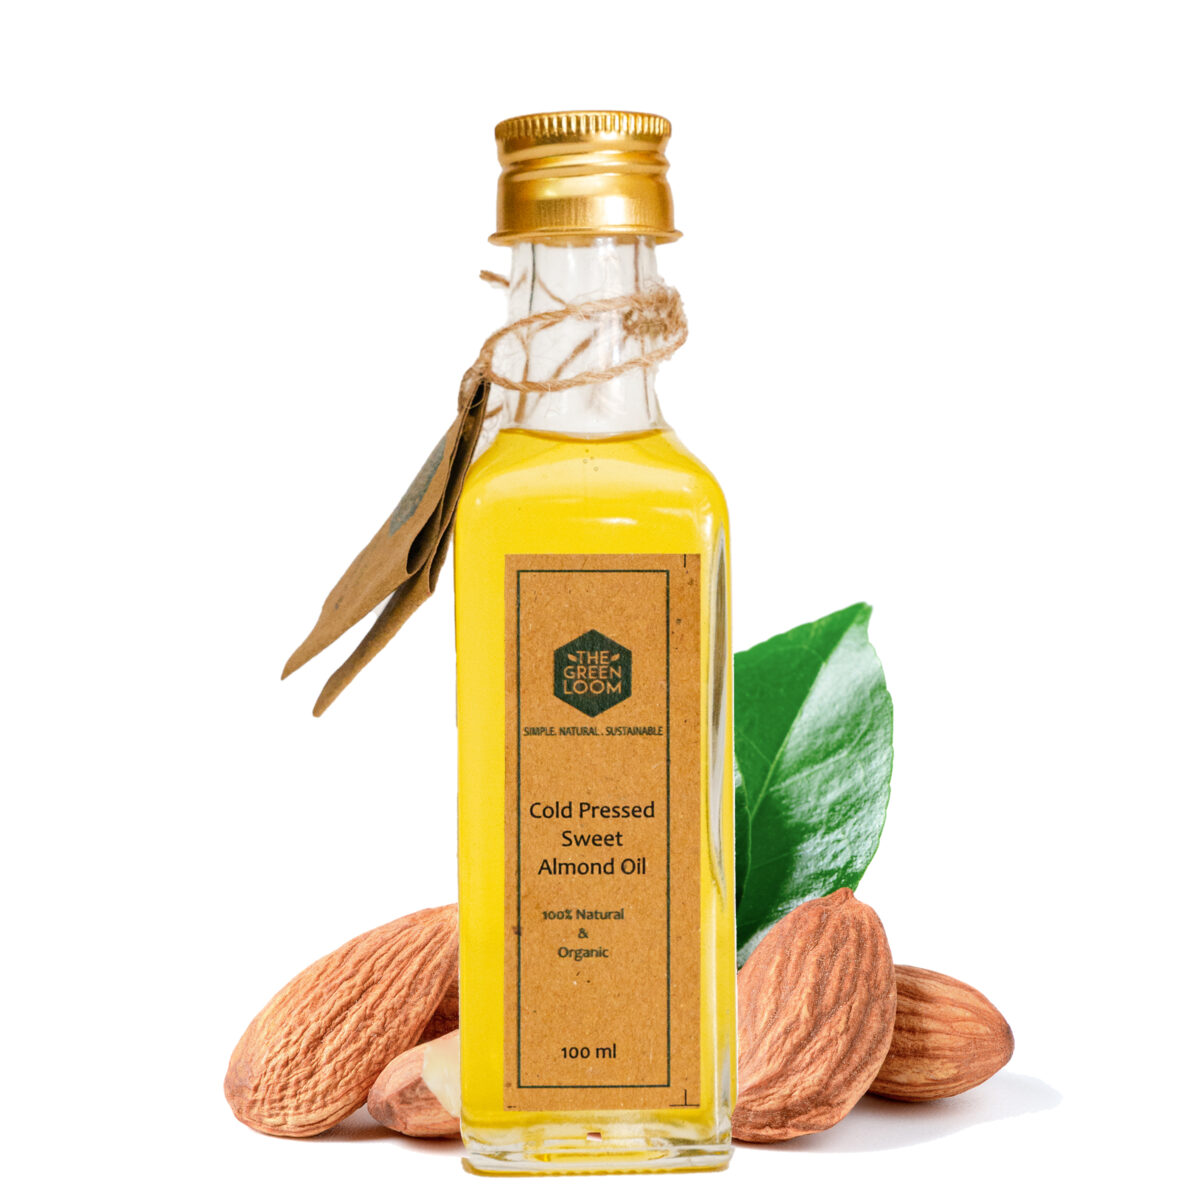 ORGANIC COLD PRESSED SWEET ALMOND OIL